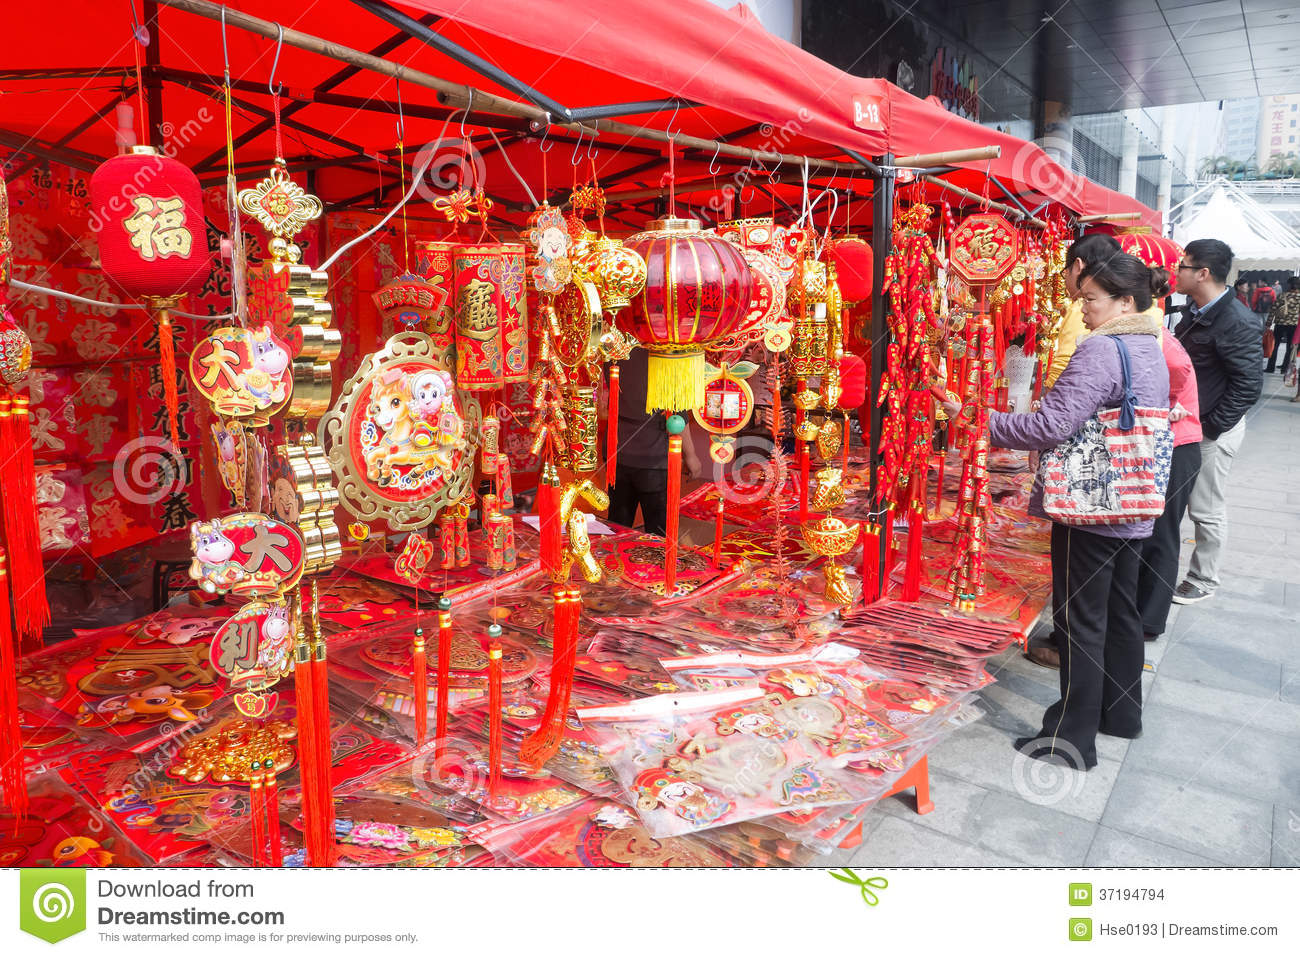 Chinese lunar new year decorations editorial stock image - Lunar new year decorations ...